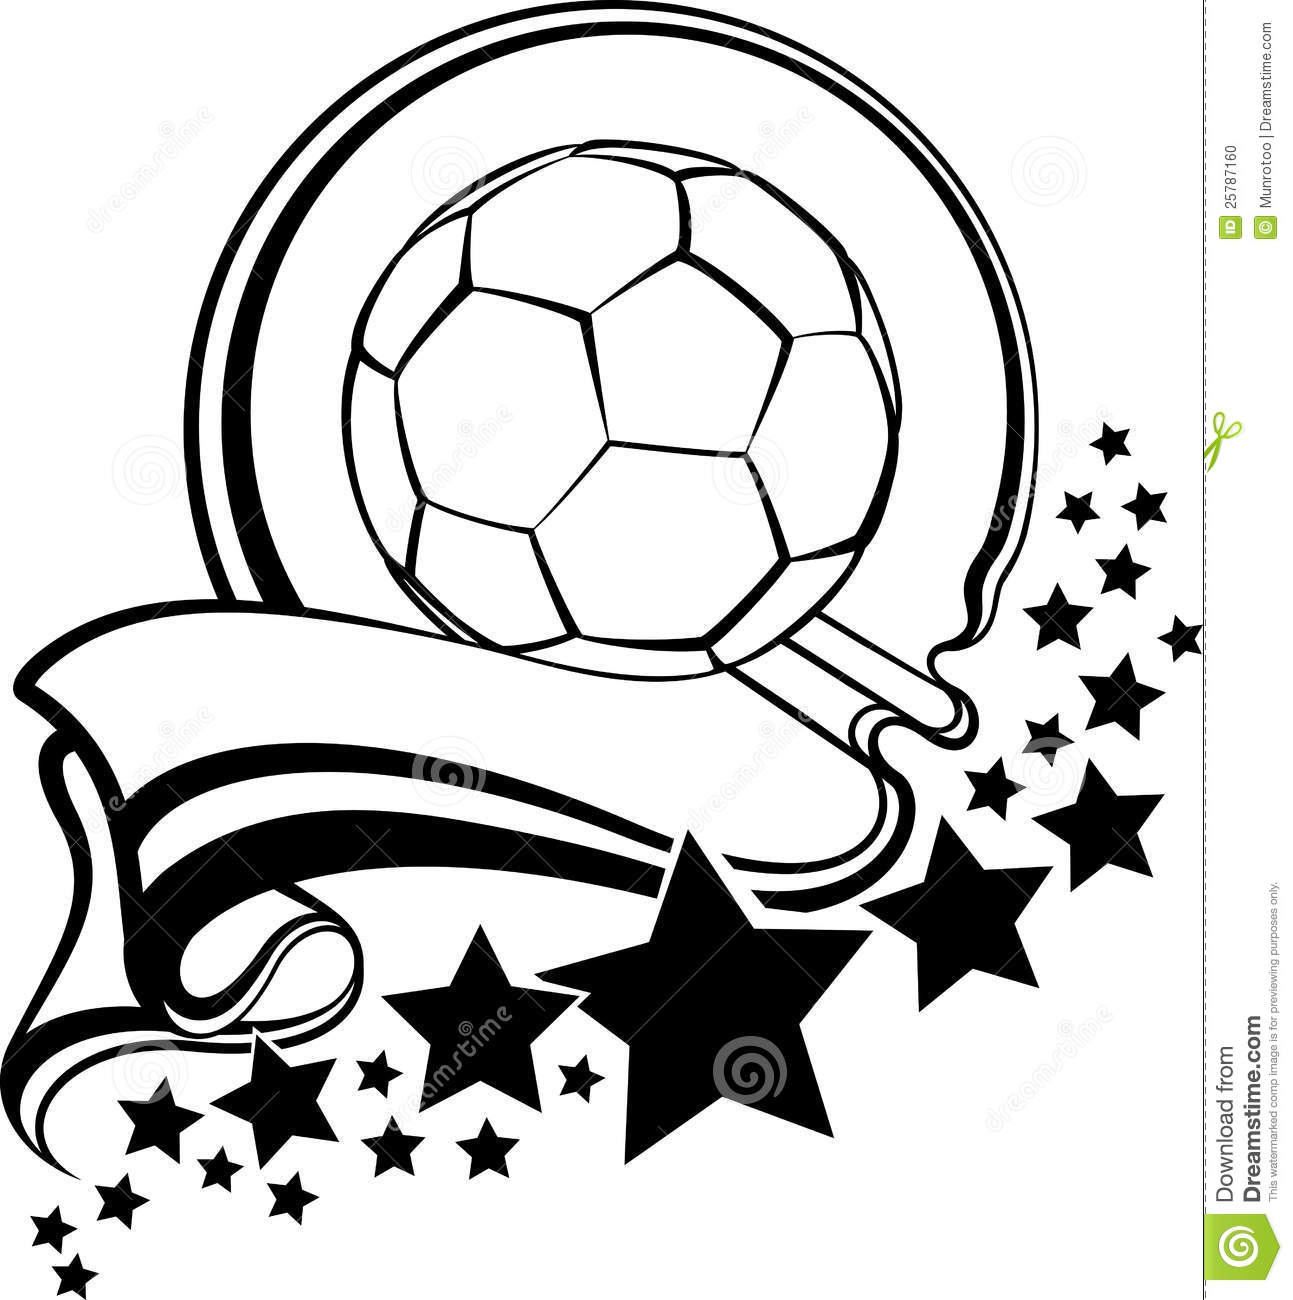 Soccer Ball With Pennant Amp Stars Design Stock Photo